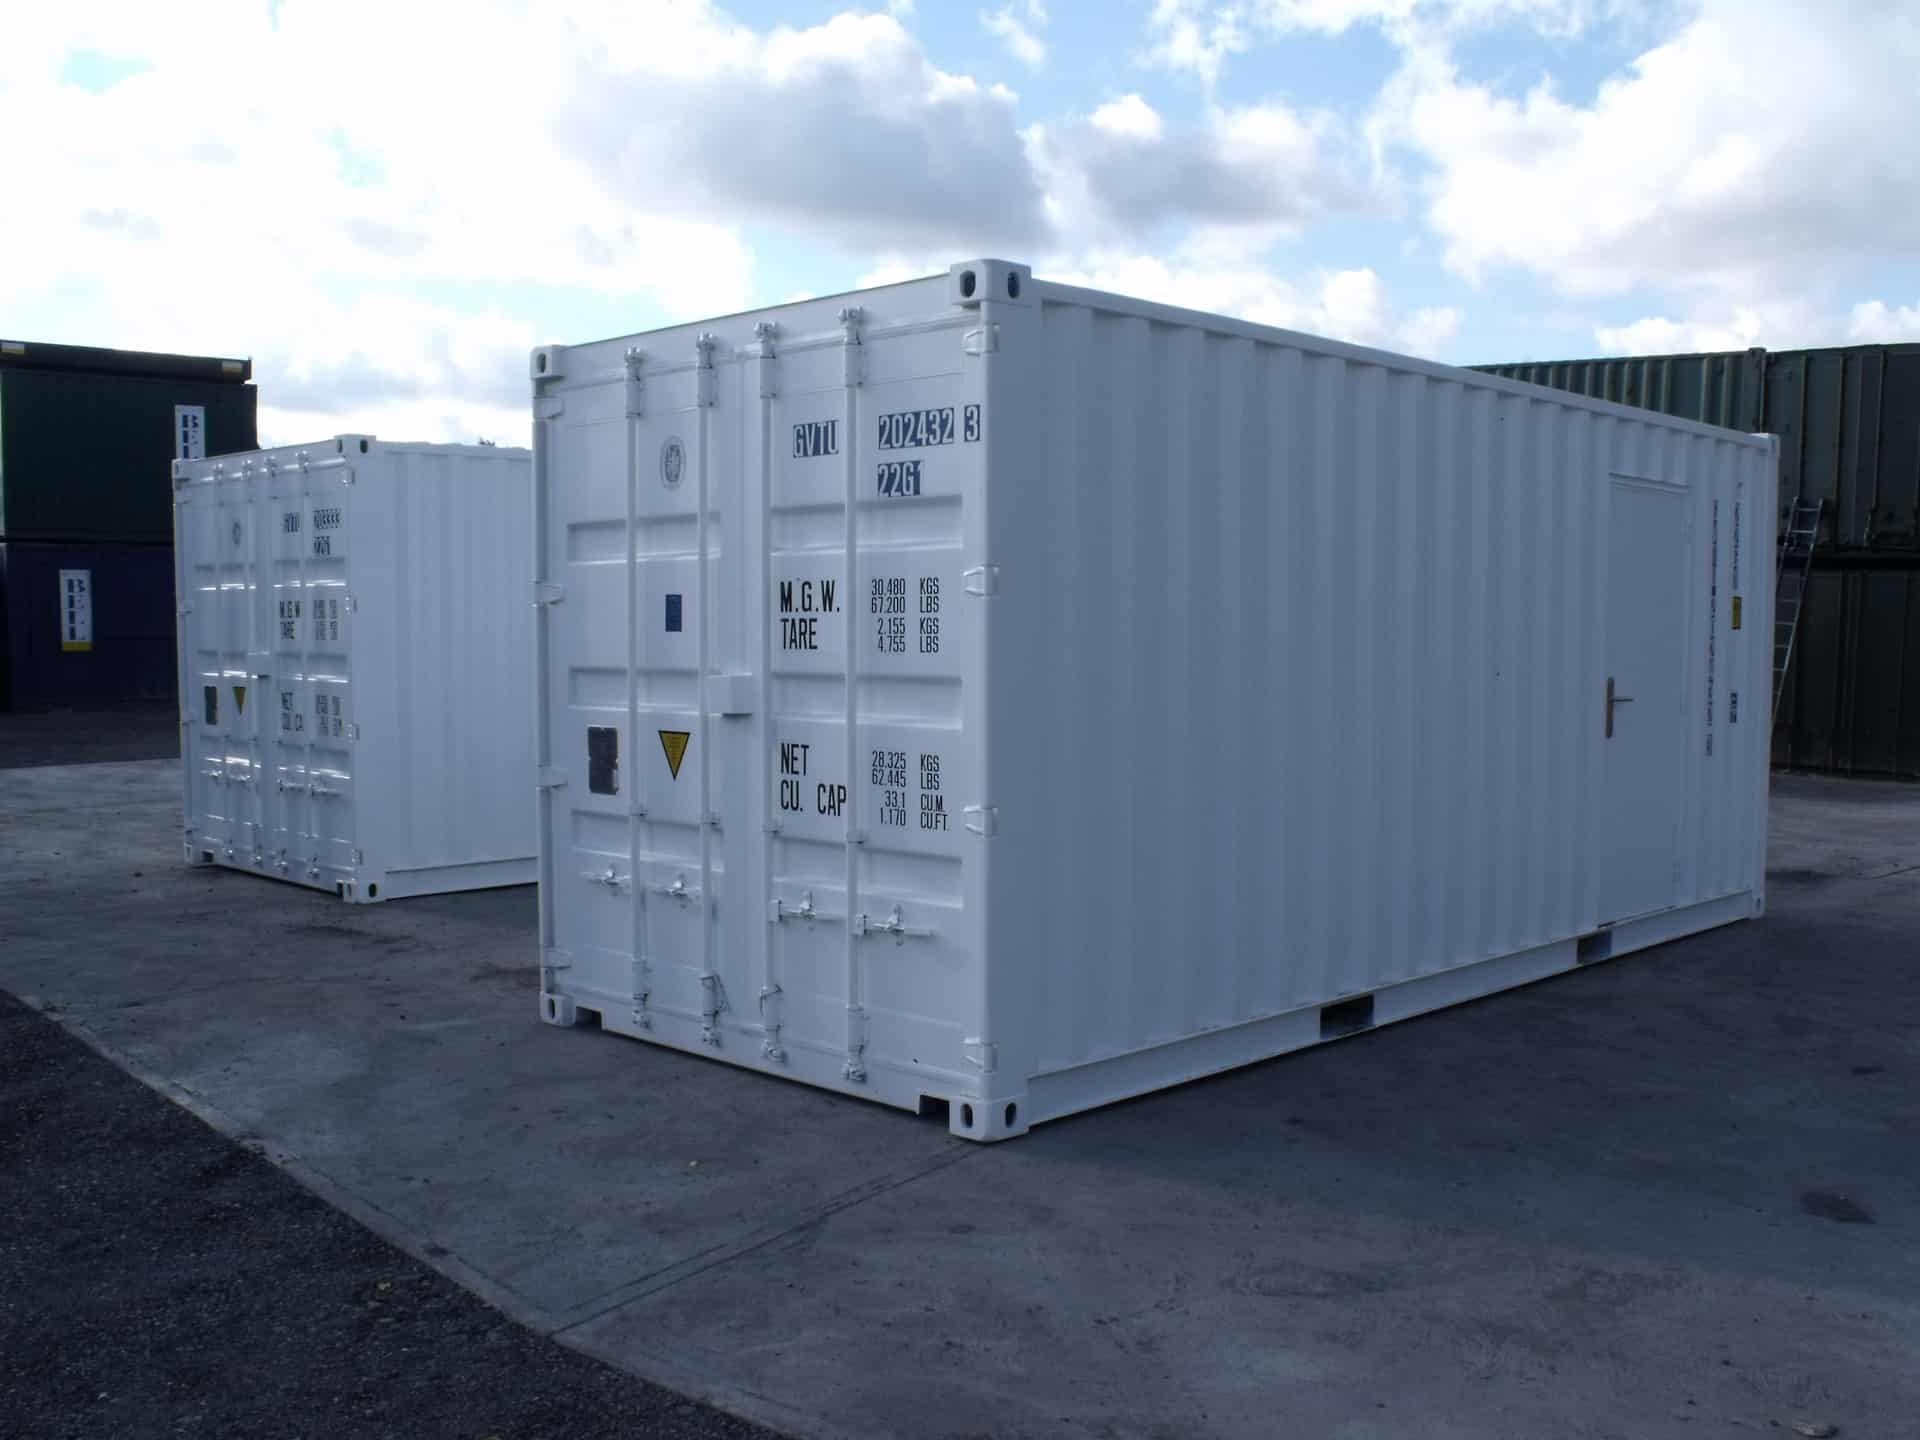 Units Storage Containers Listitdallas